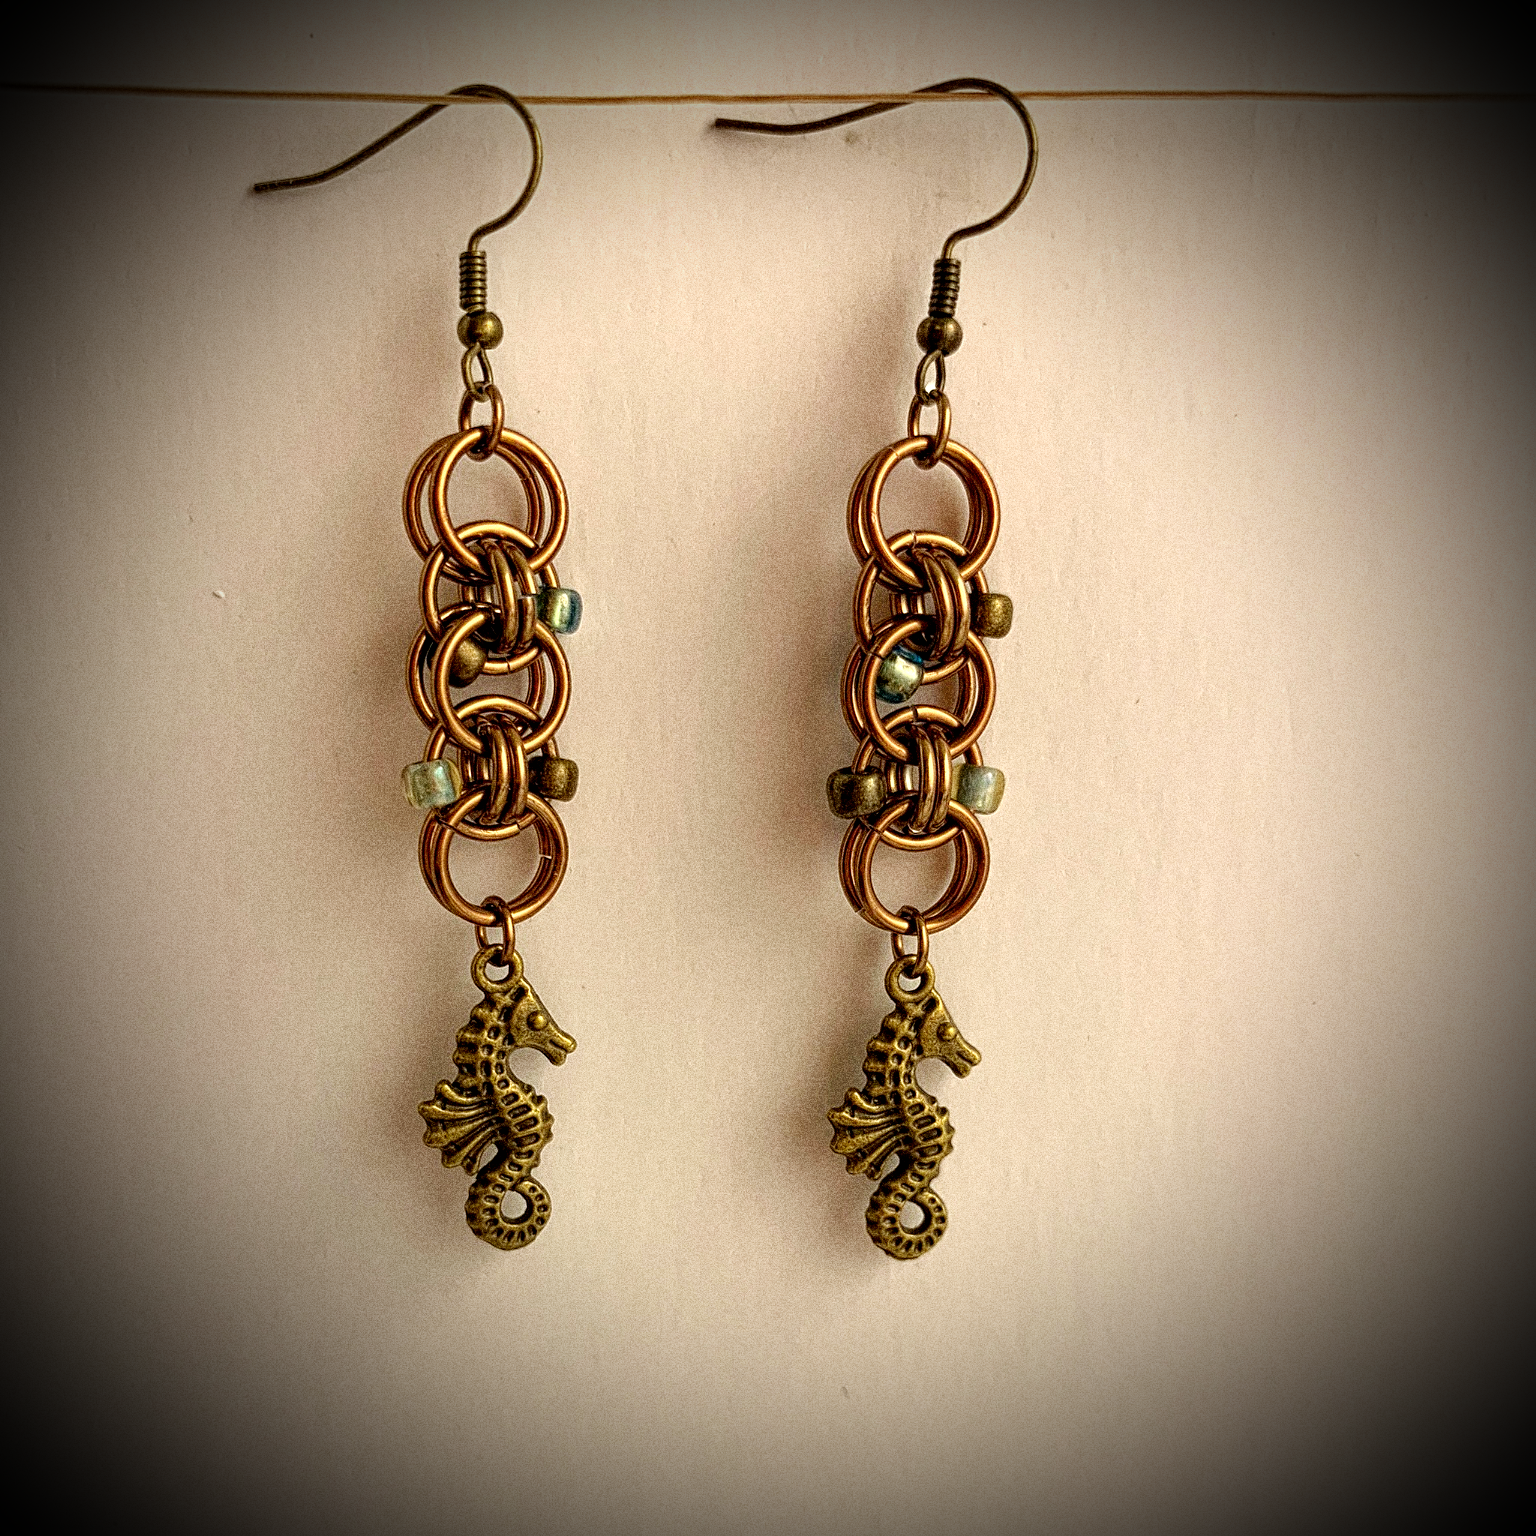 773cf16a0 Take a Swim in the Ocean with Our Seahorses Delight Earrings